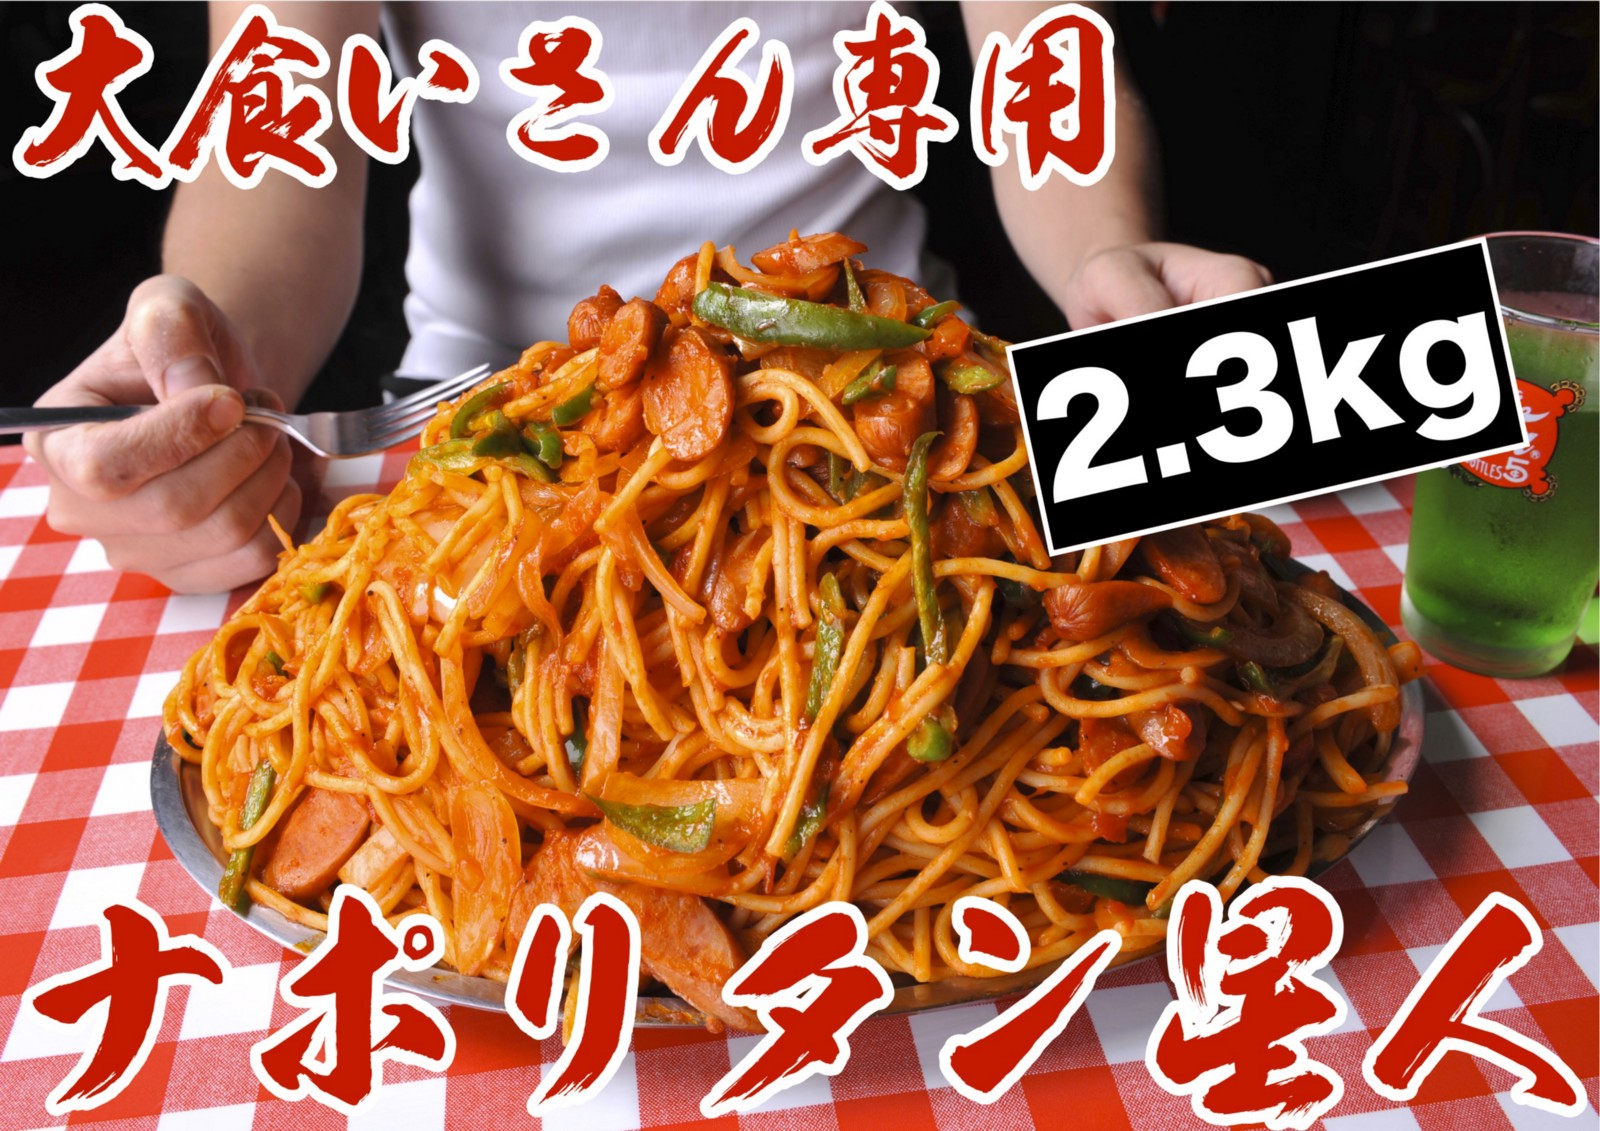 5 MASSIVE Portion Restaurants for Only $10 in Tokyo